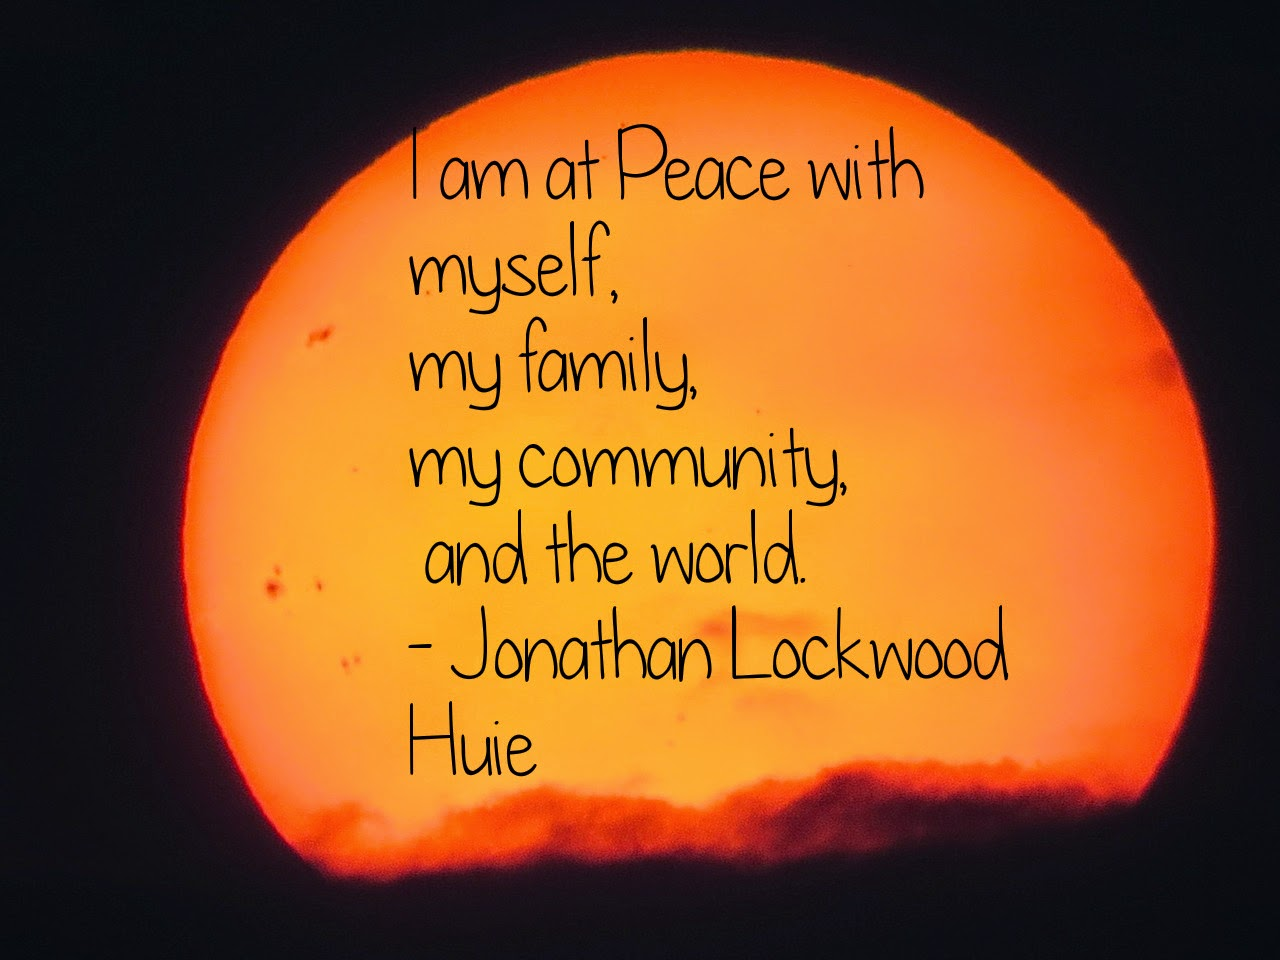 Thoughtsnlife.com: I am at Peace with myself, my family, my community, and the world. - Jonathan Lockwood Huie